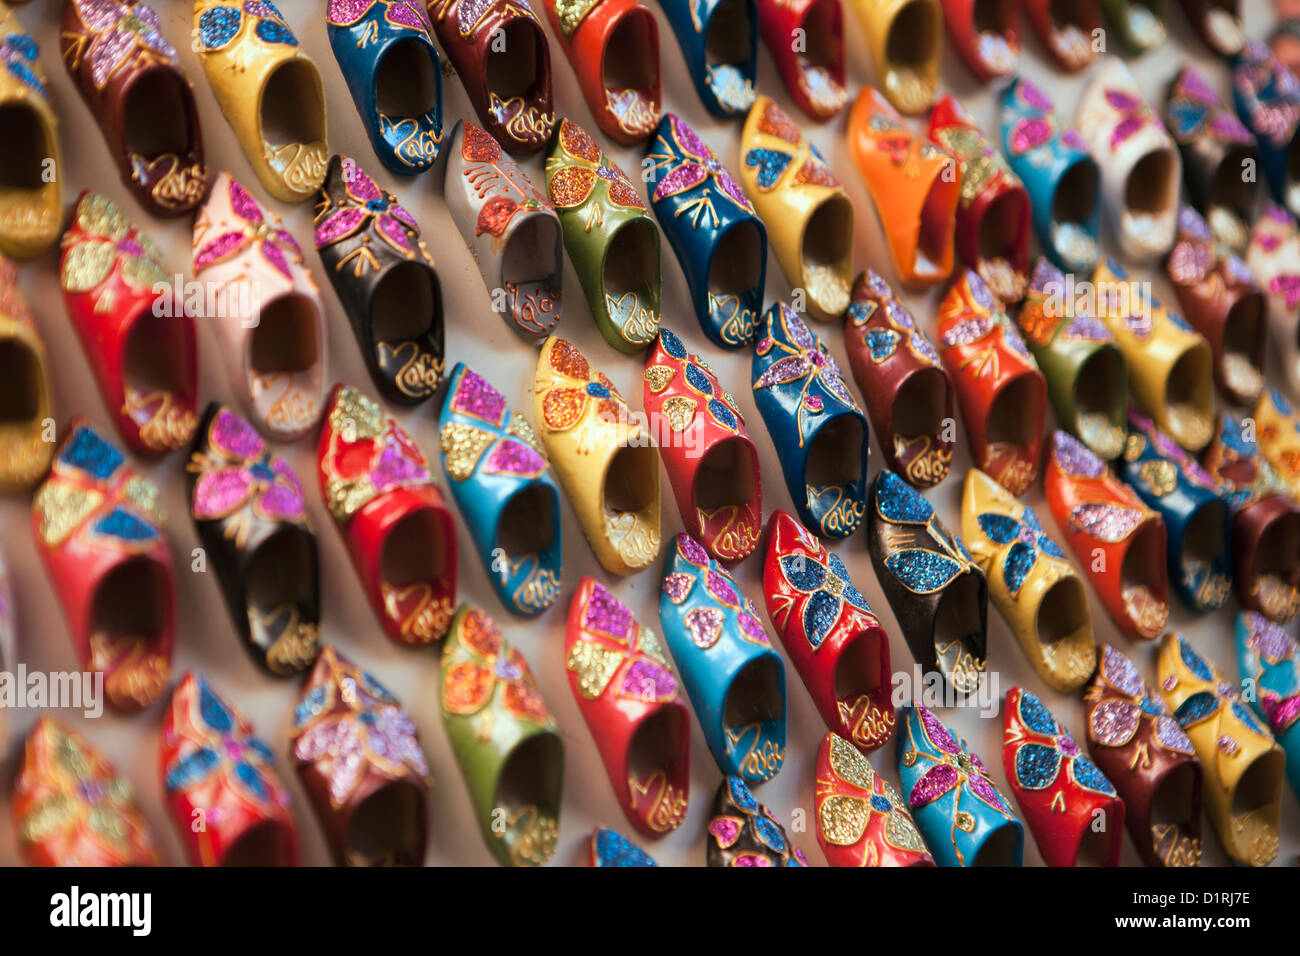 Morocco, Marrakech, Market. Small mules or babouches for sale. - Stock Image